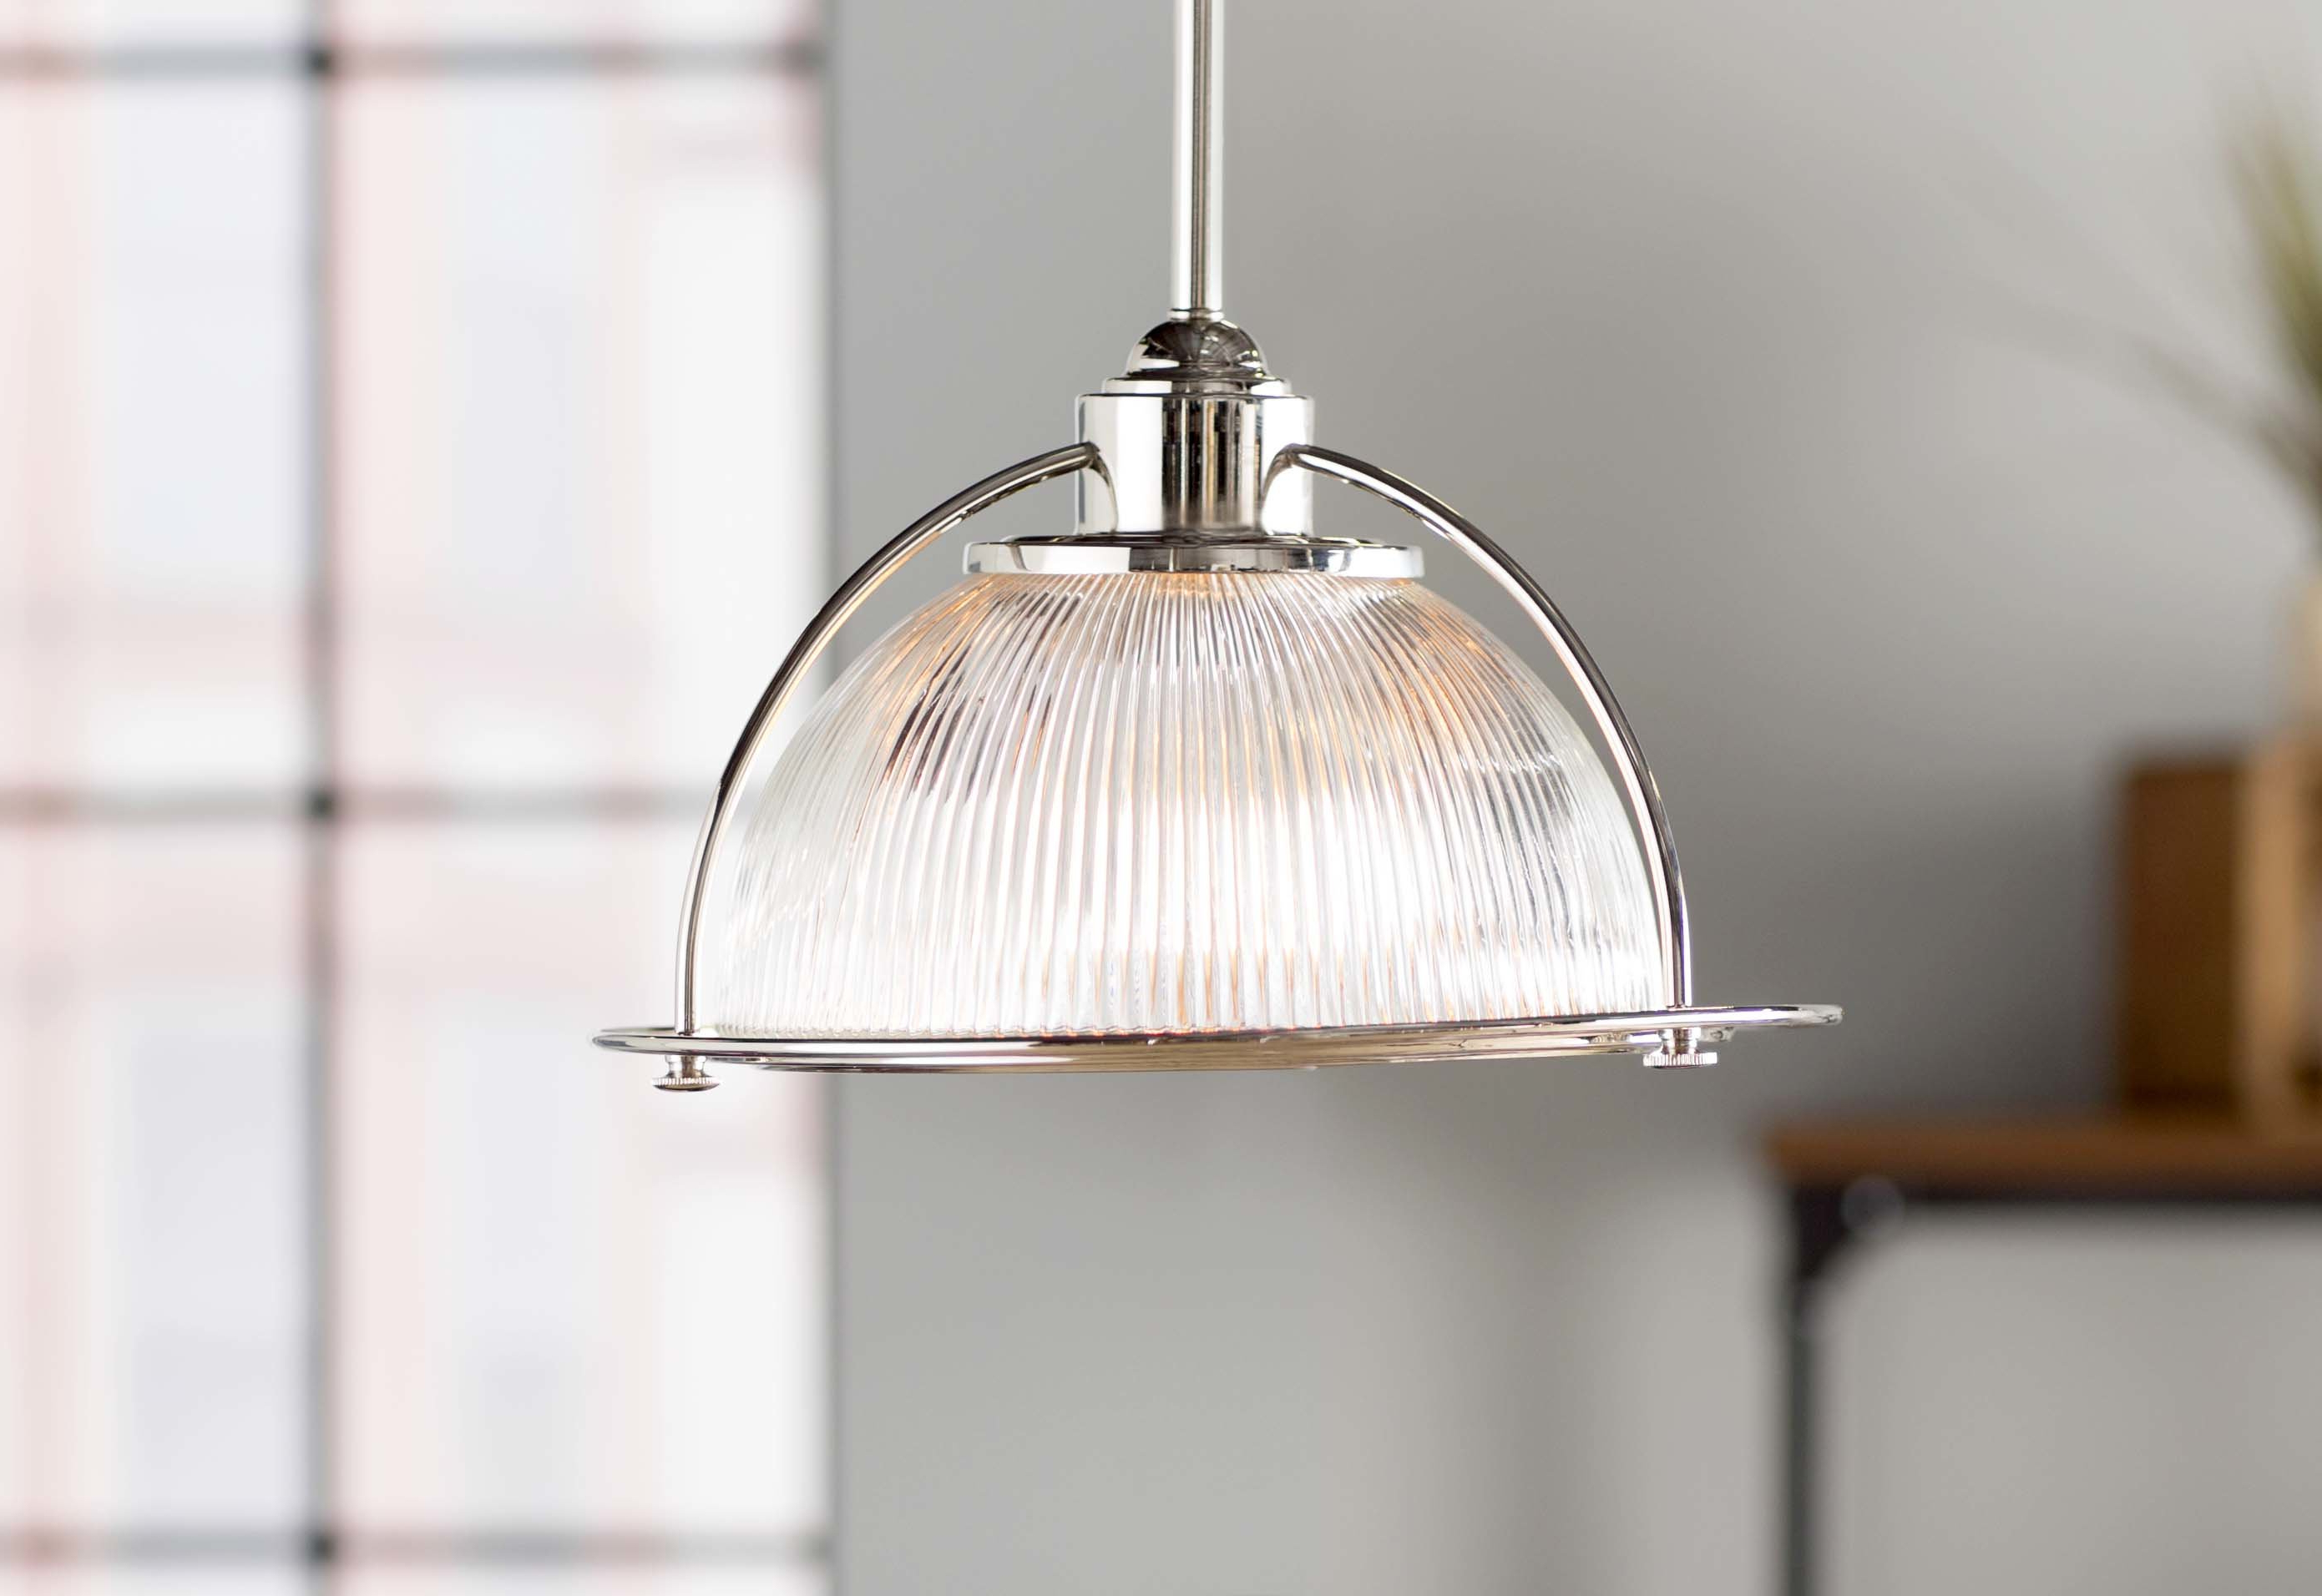 Brickford 1 Light Single Dome Pendant For Widely Used Granville 2 Light Single Dome Pendants (View 11 of 25)